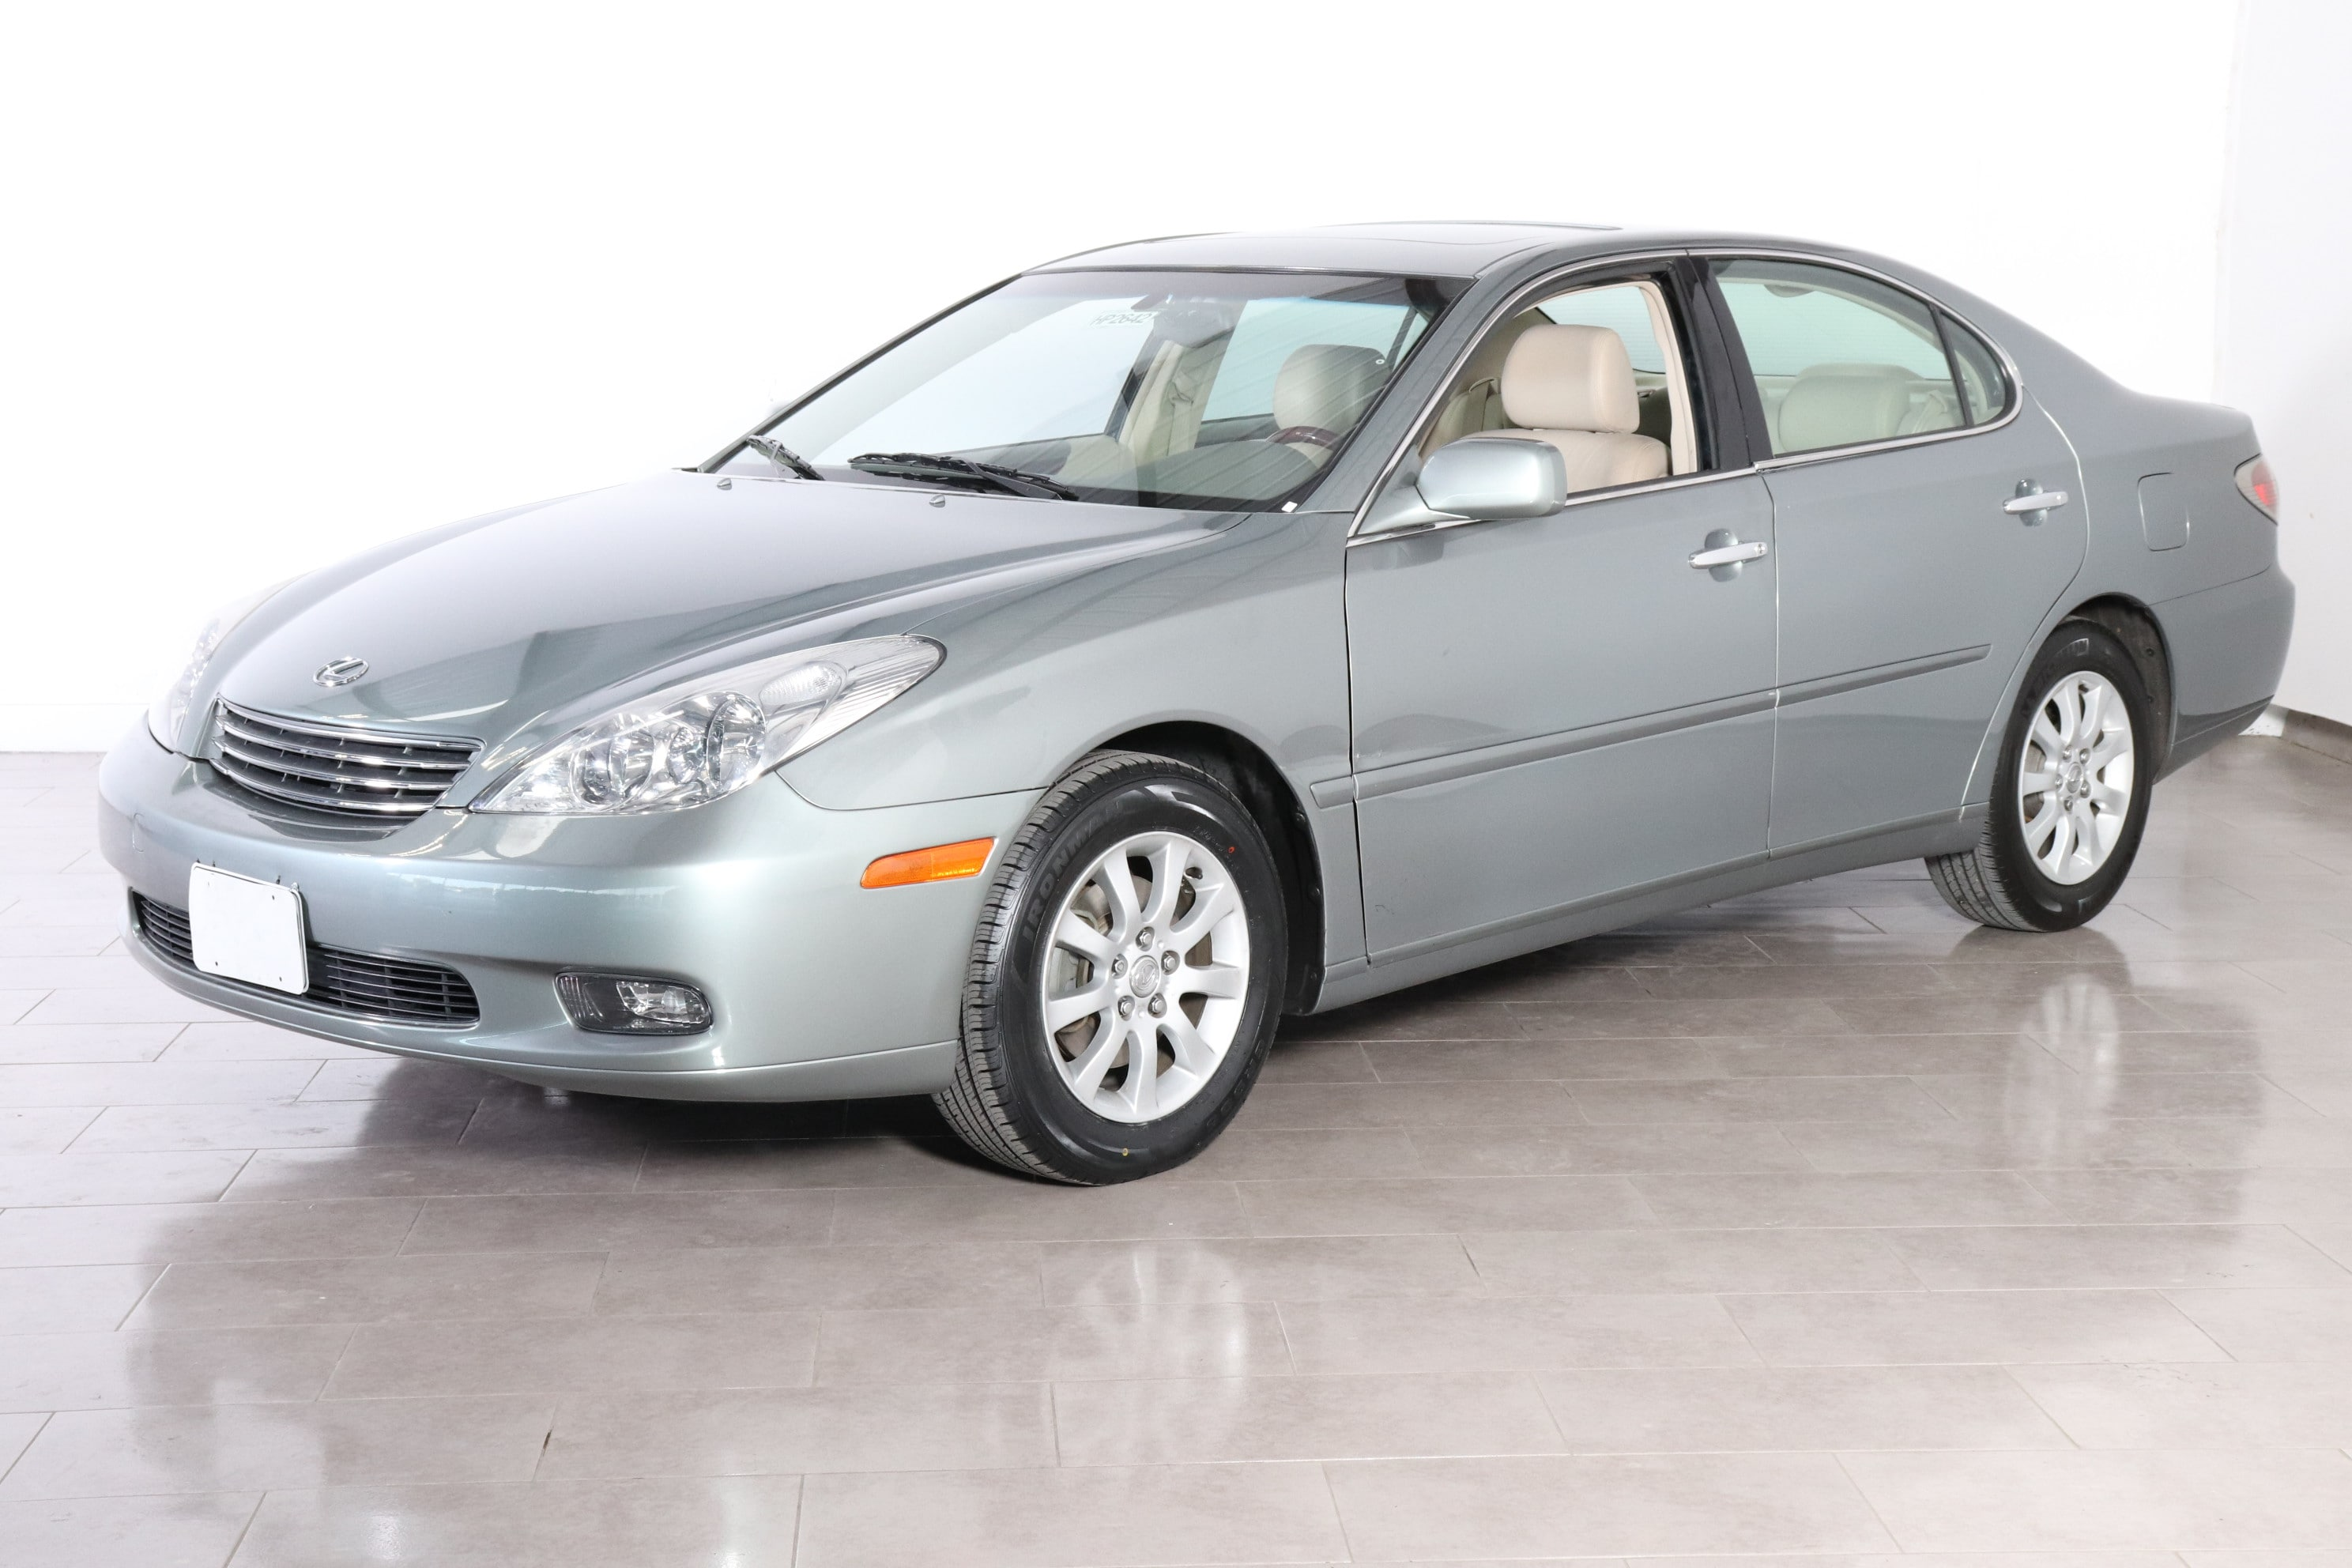 Green Lexus In Texas For Sale ▷ Used Cars Buysellsearch